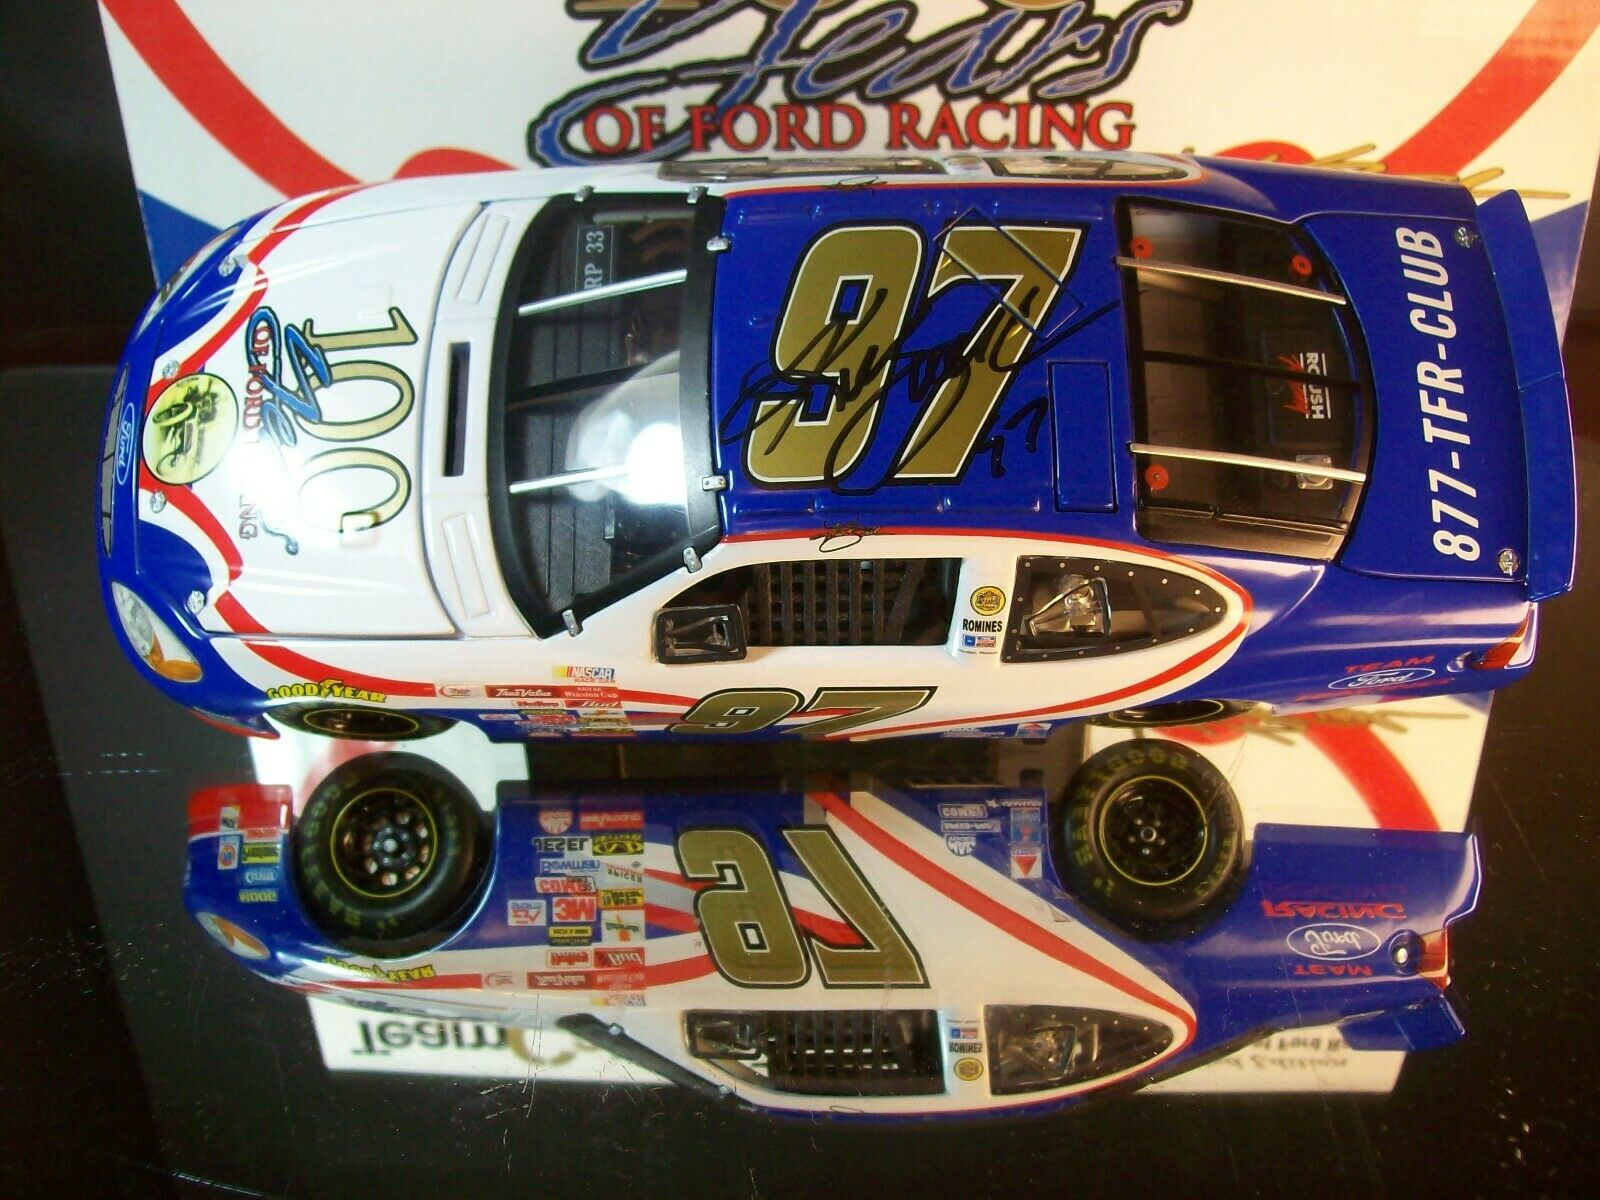 Kurt Busch Years Od Ford Racing 2001 Rookie Ford Ford Ford Taurus Autographed 1 24 3513b8